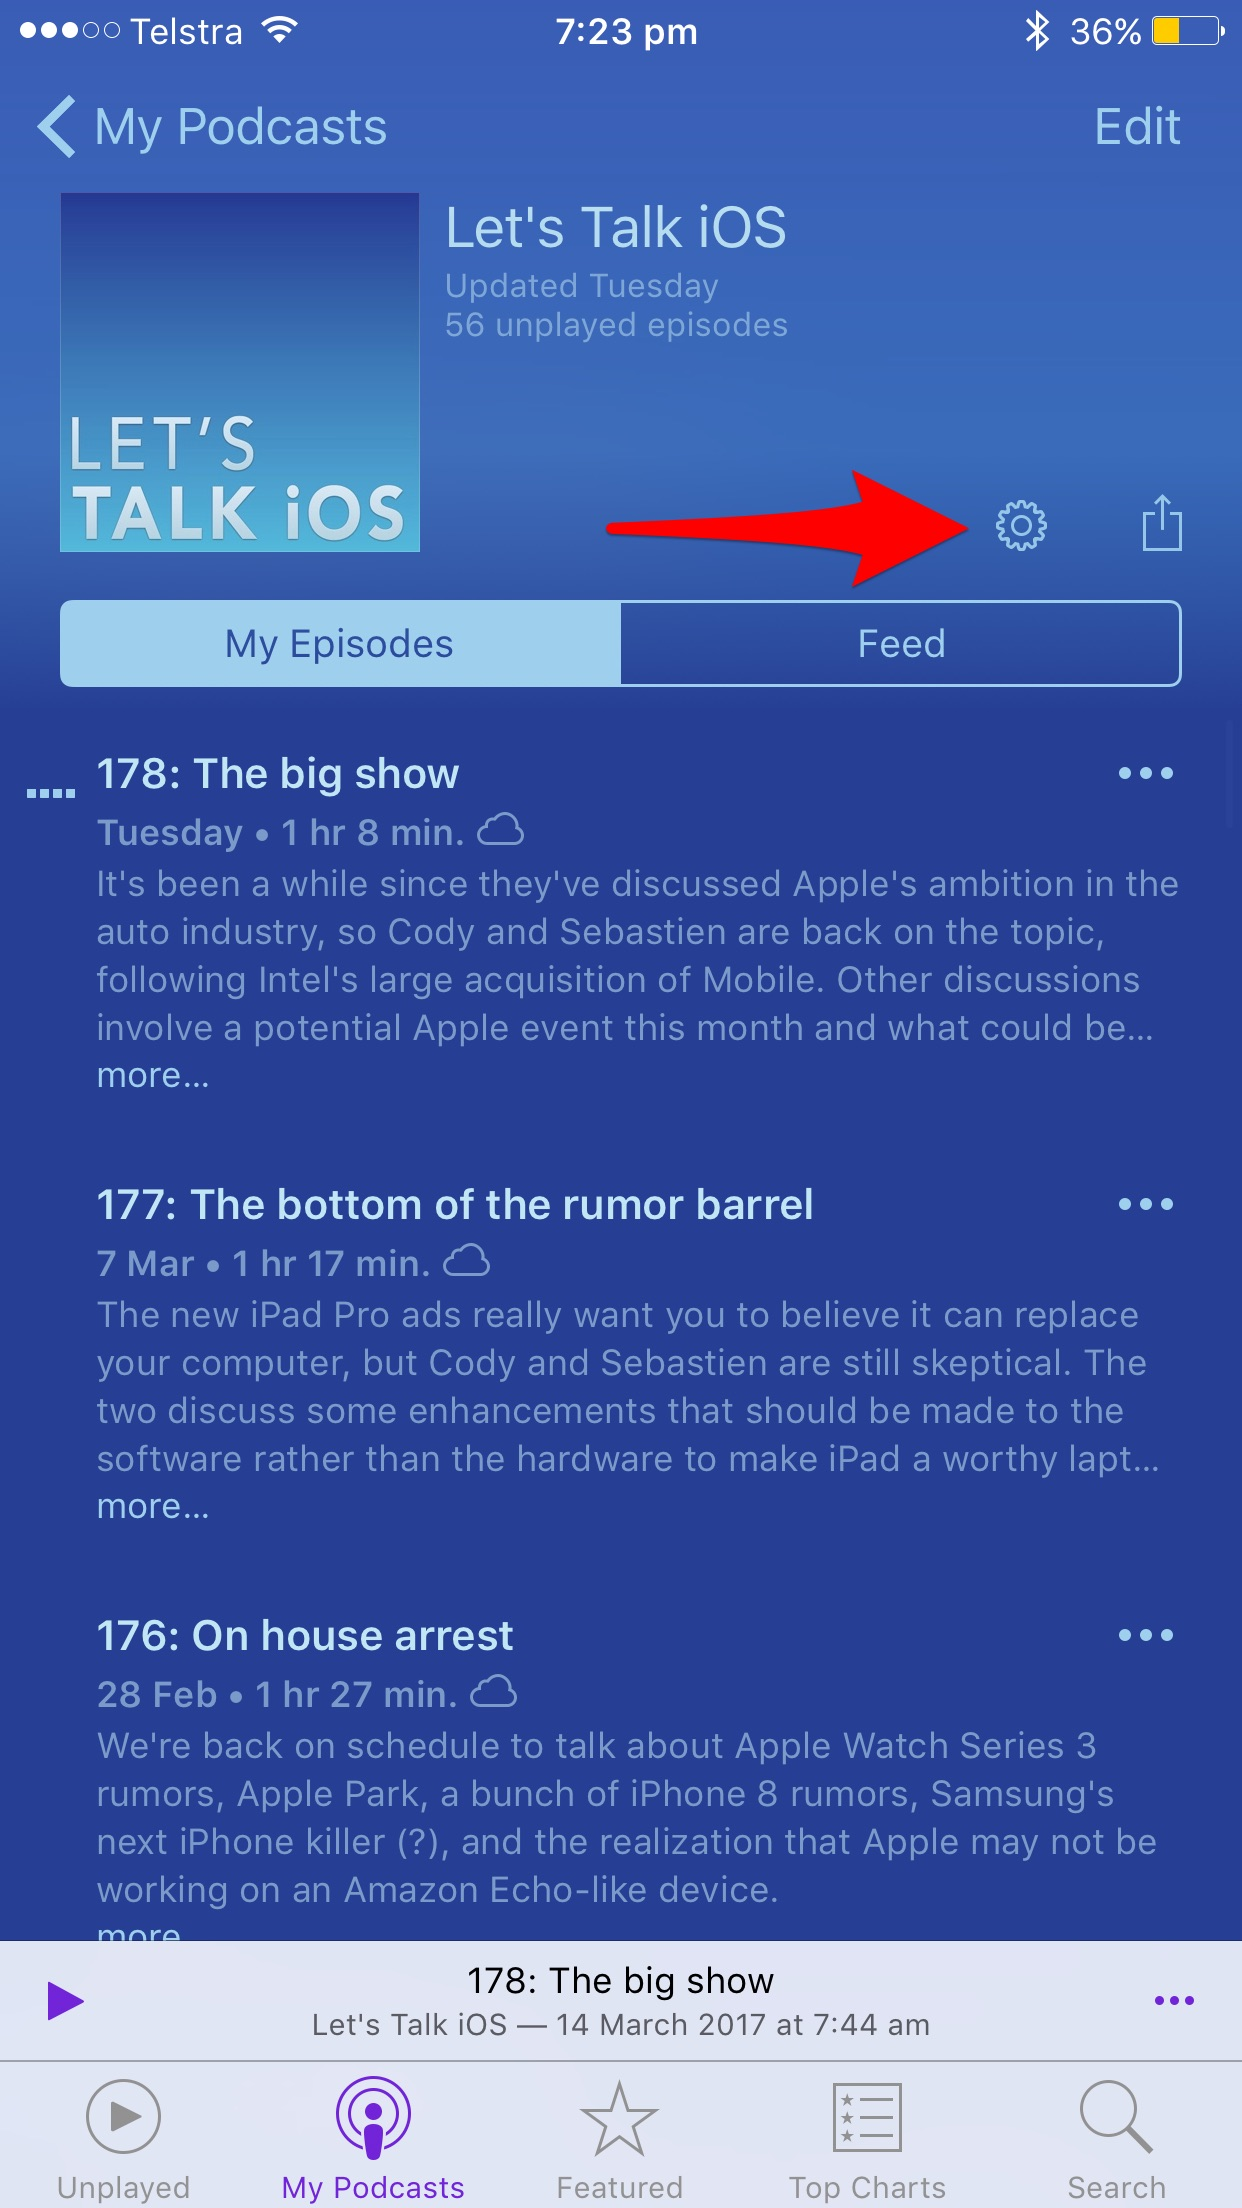 How to enable automatic downloads for your favorite podcasts